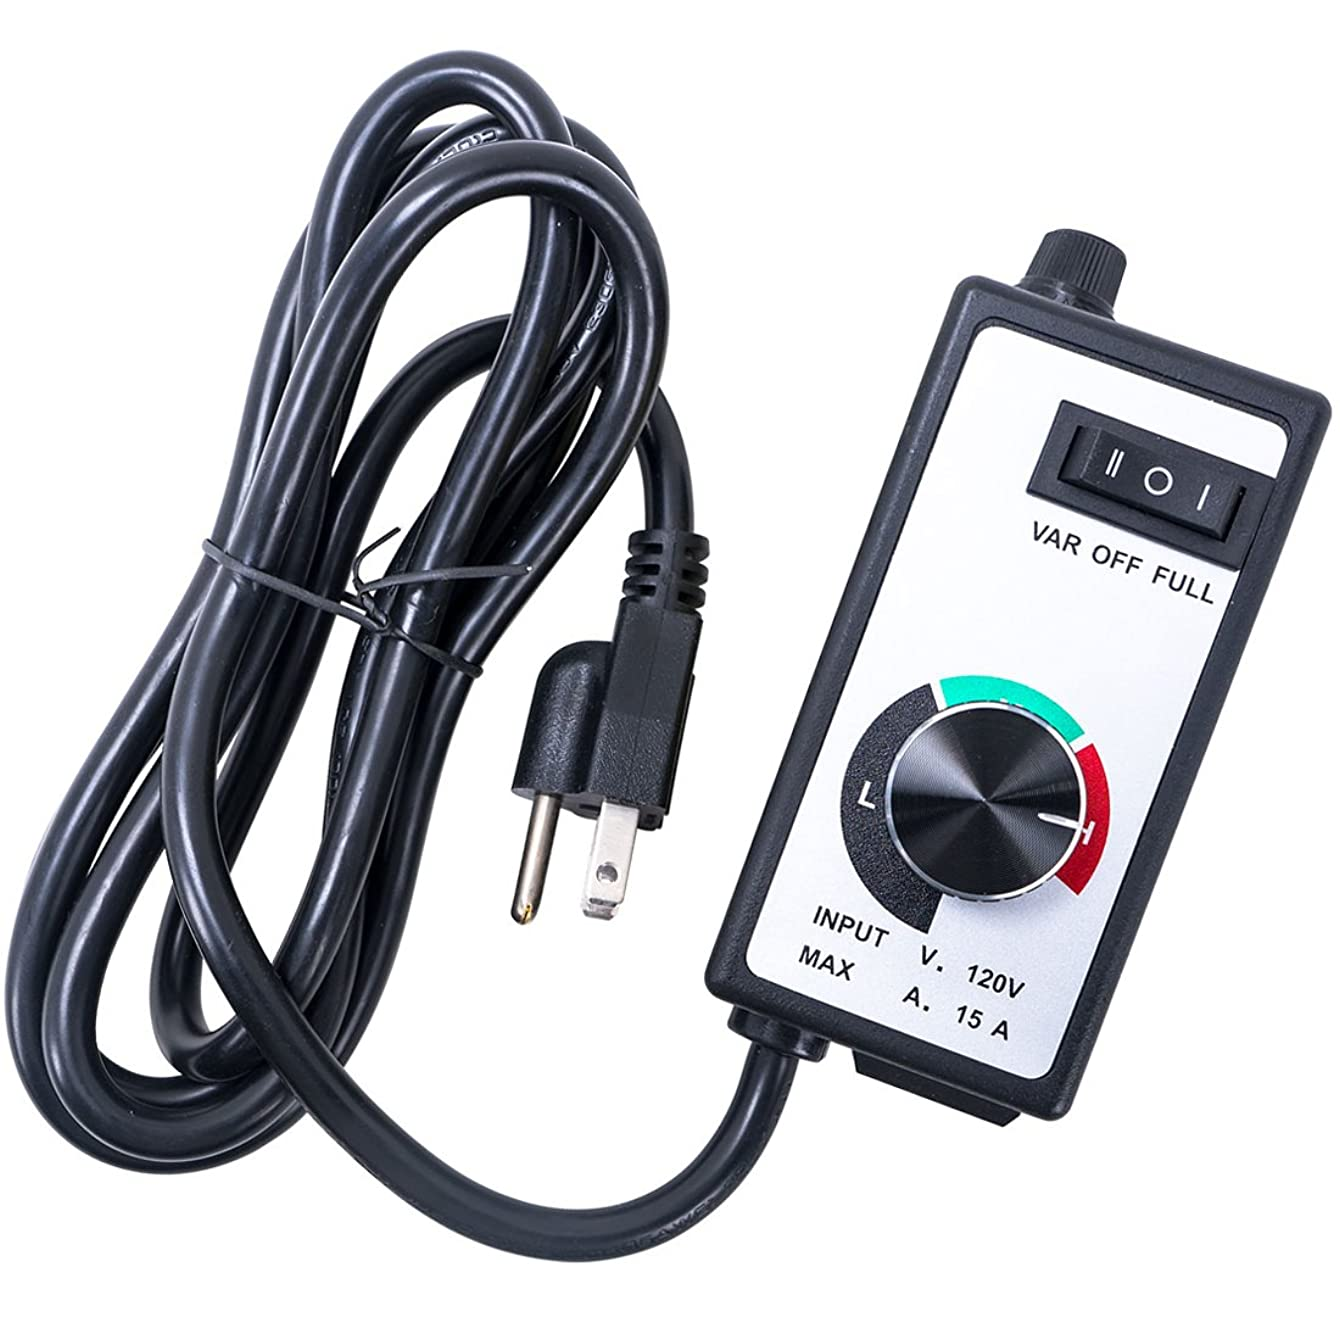 CastleGreens Variable Fan Speed Controller 120V for Inline Duct Fan Exhaust 15A, 6 FT Power Cord